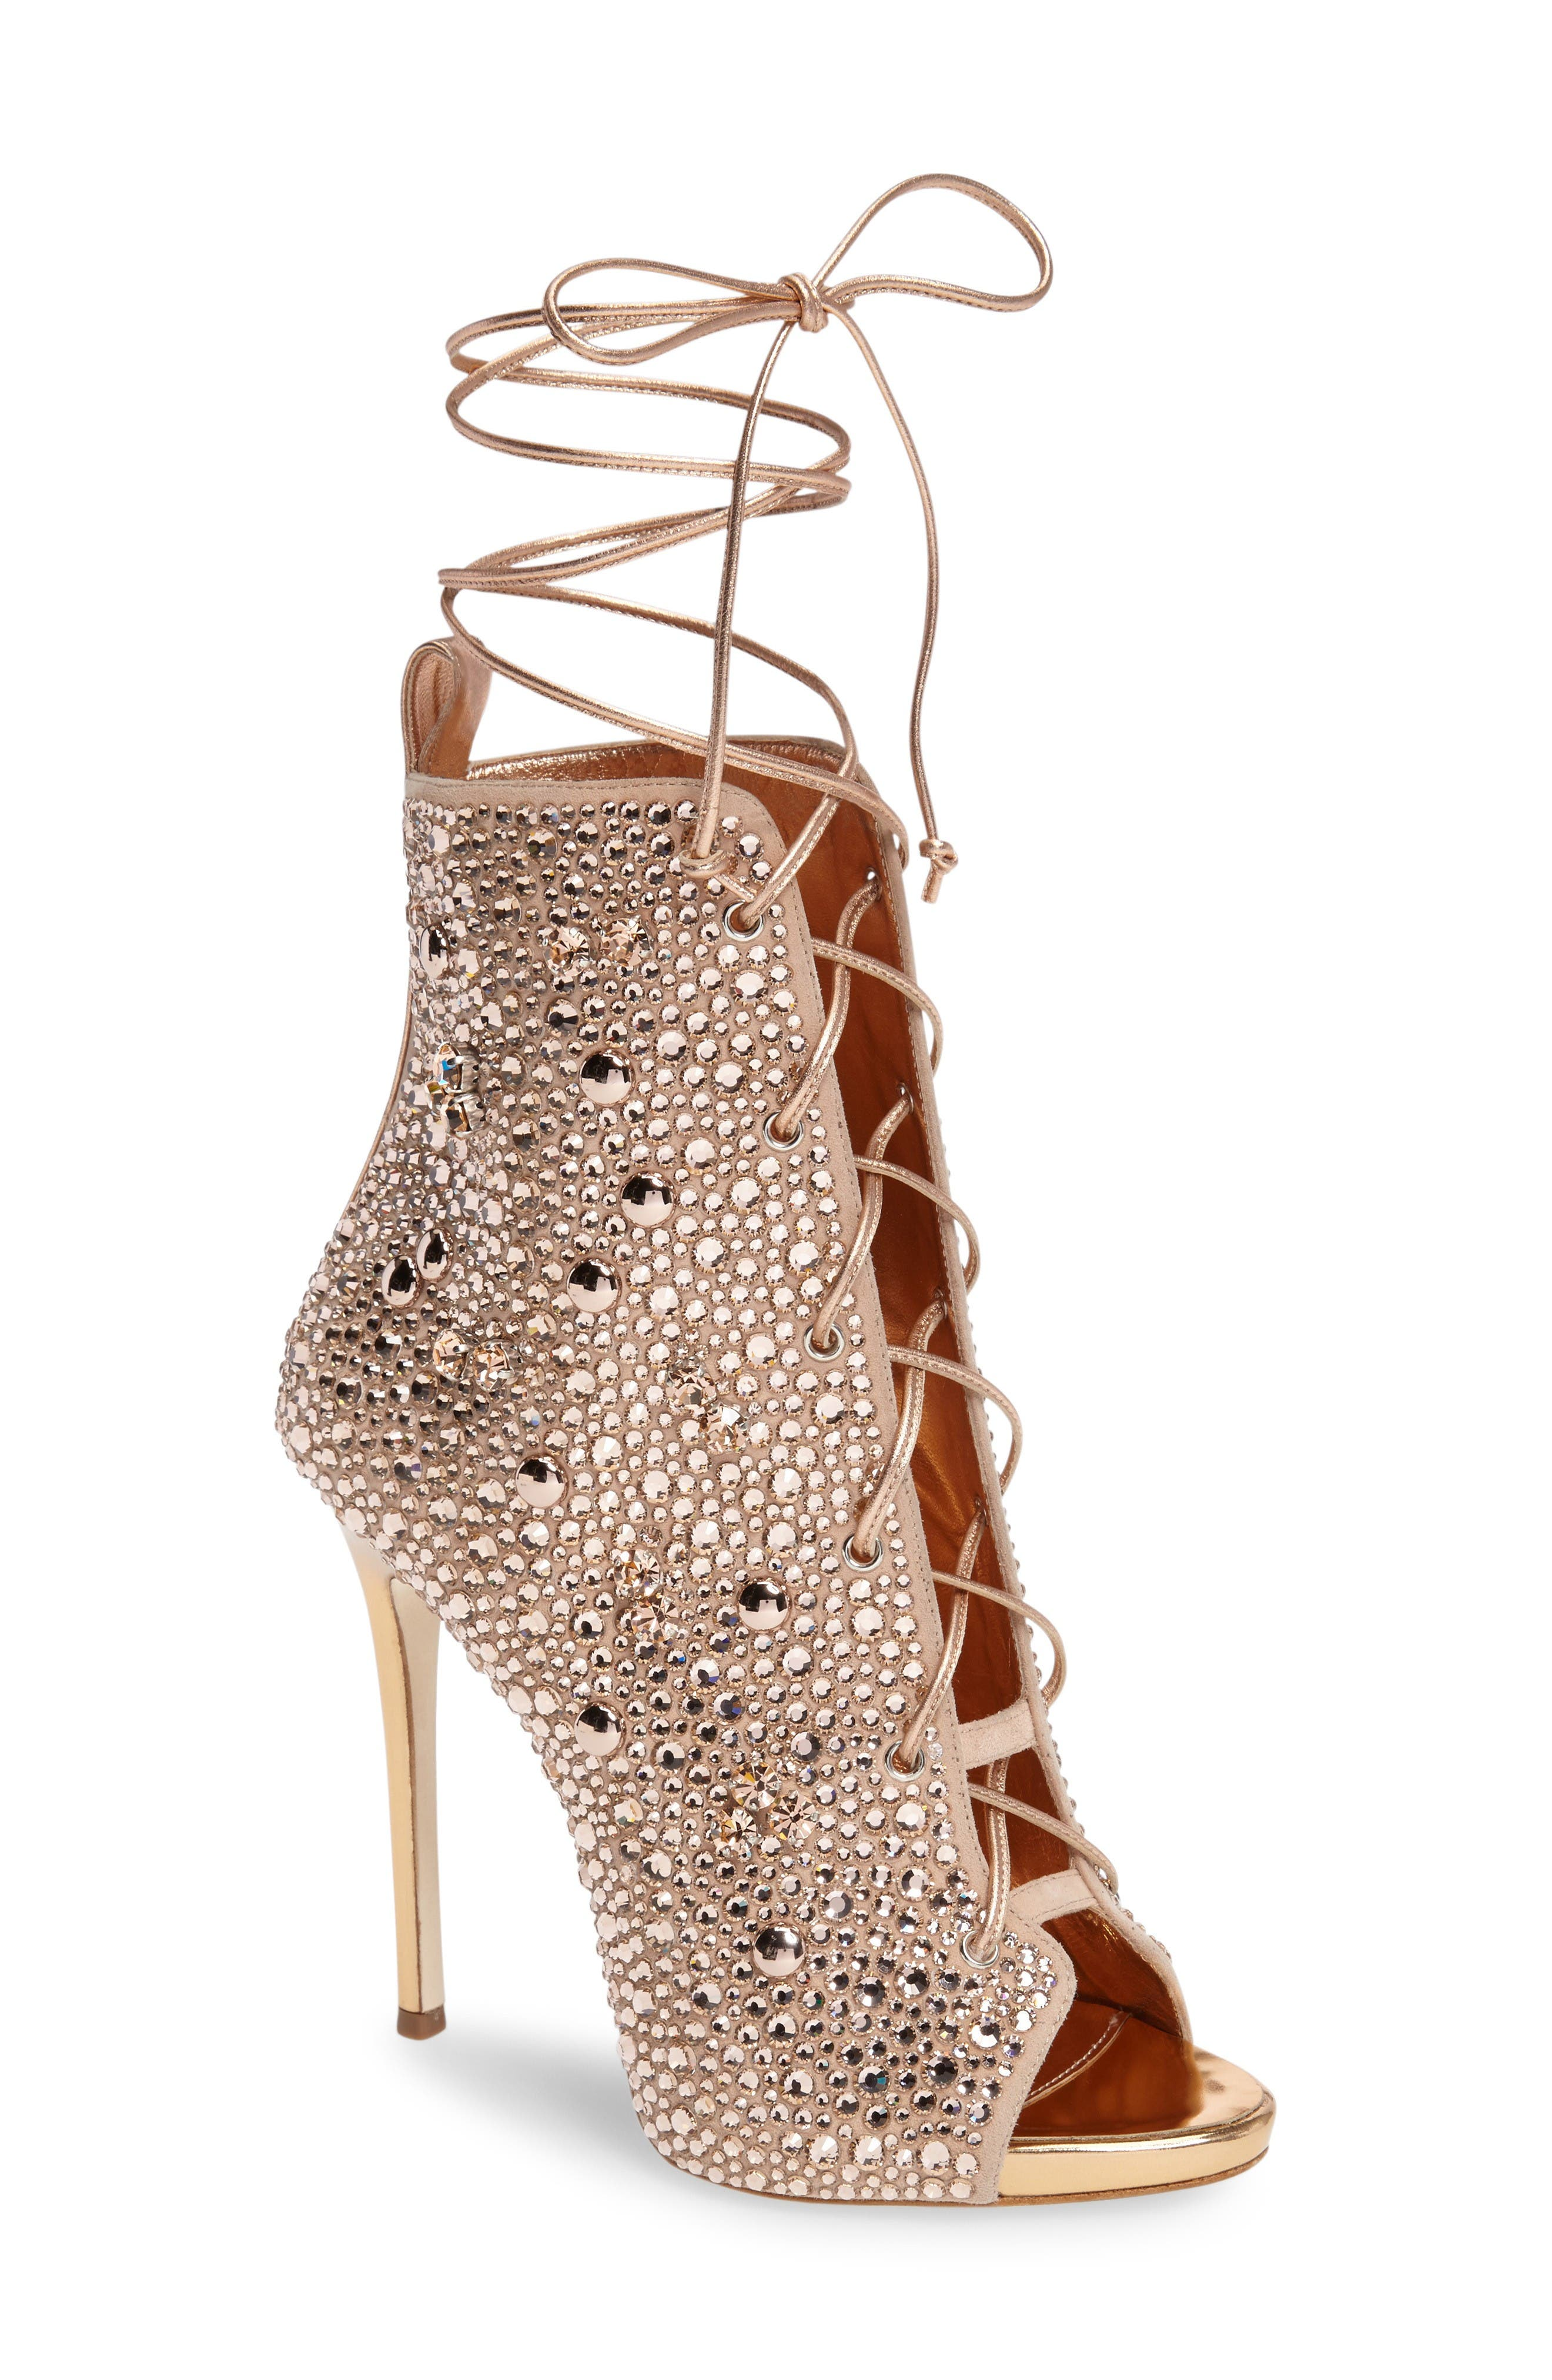 Giuseppe for Jennifer Lopez Lynda Embellished Lace-Up Sandal,                             Main thumbnail 1, color,                             Metallic Gold